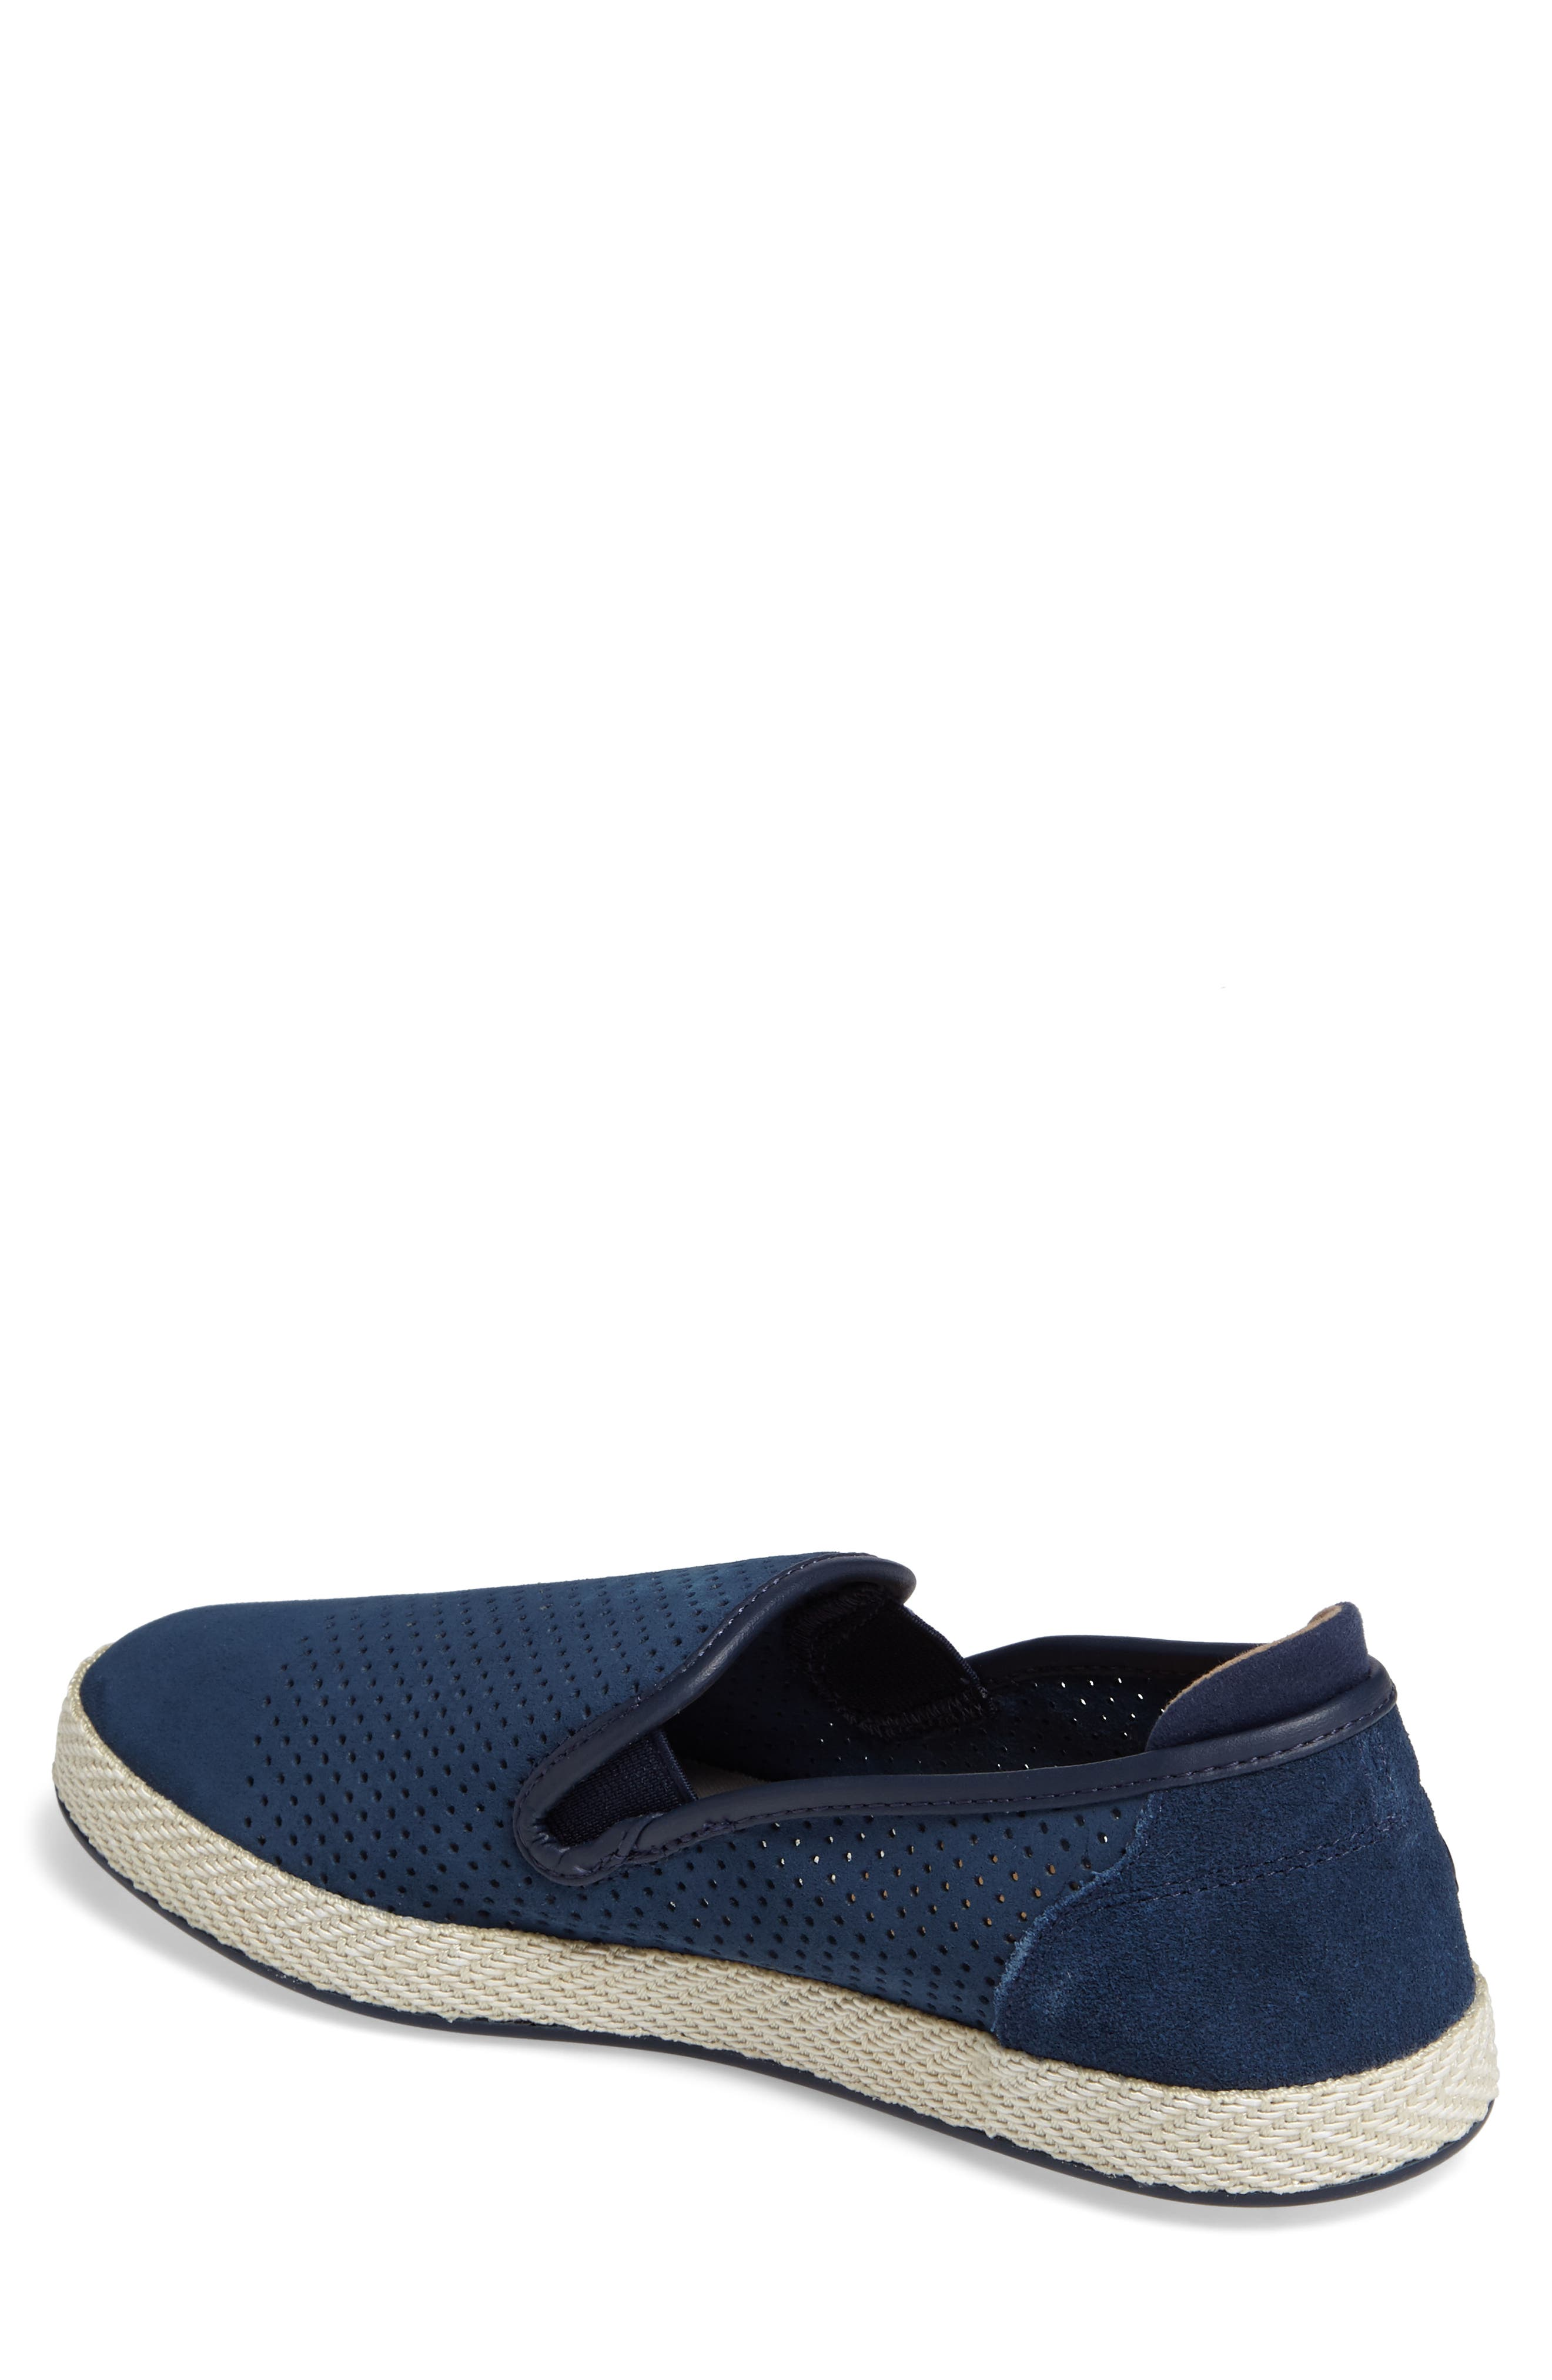 Alternate Image 2  - Lacoste Tombre Slip-On (Men)